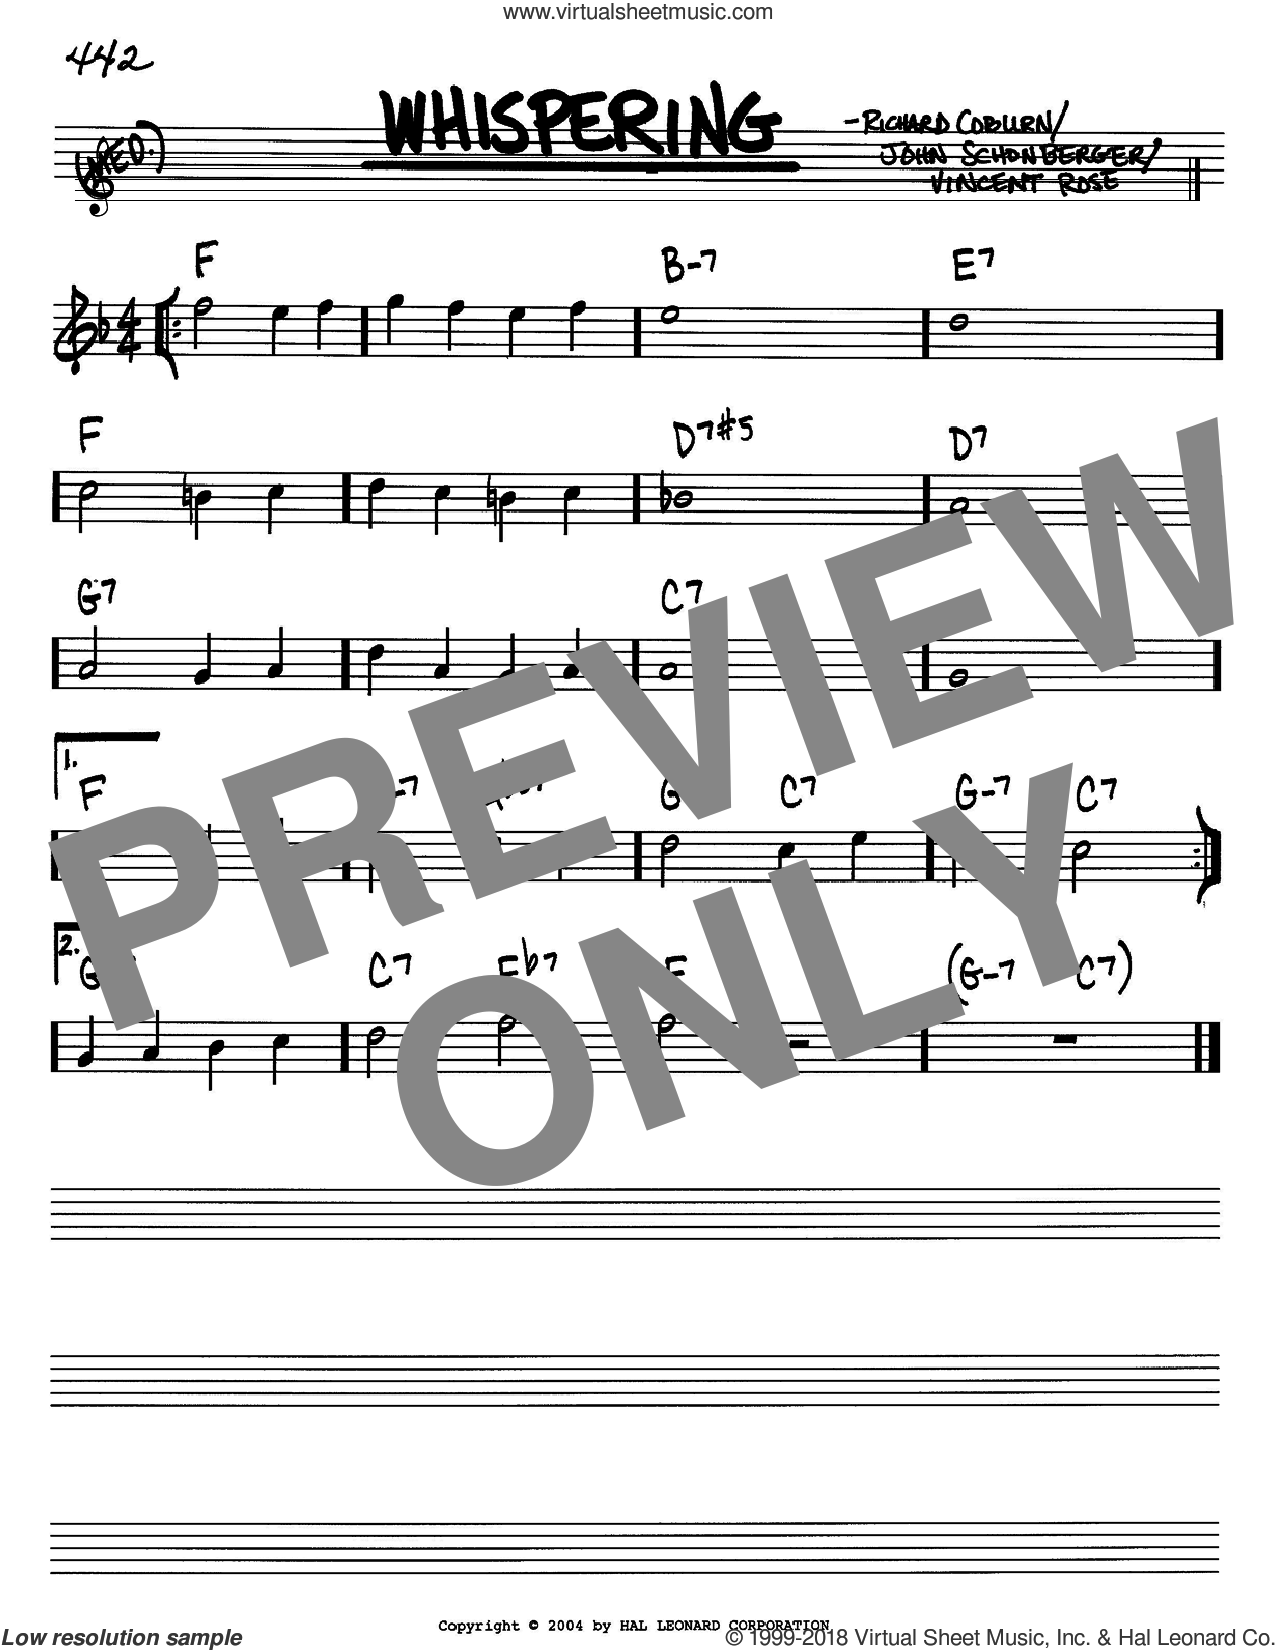 Whispering sheet music for voice and other instruments (Bb) by Richard Coburn, John Schonberger and Vincent Rose. Score Image Preview.